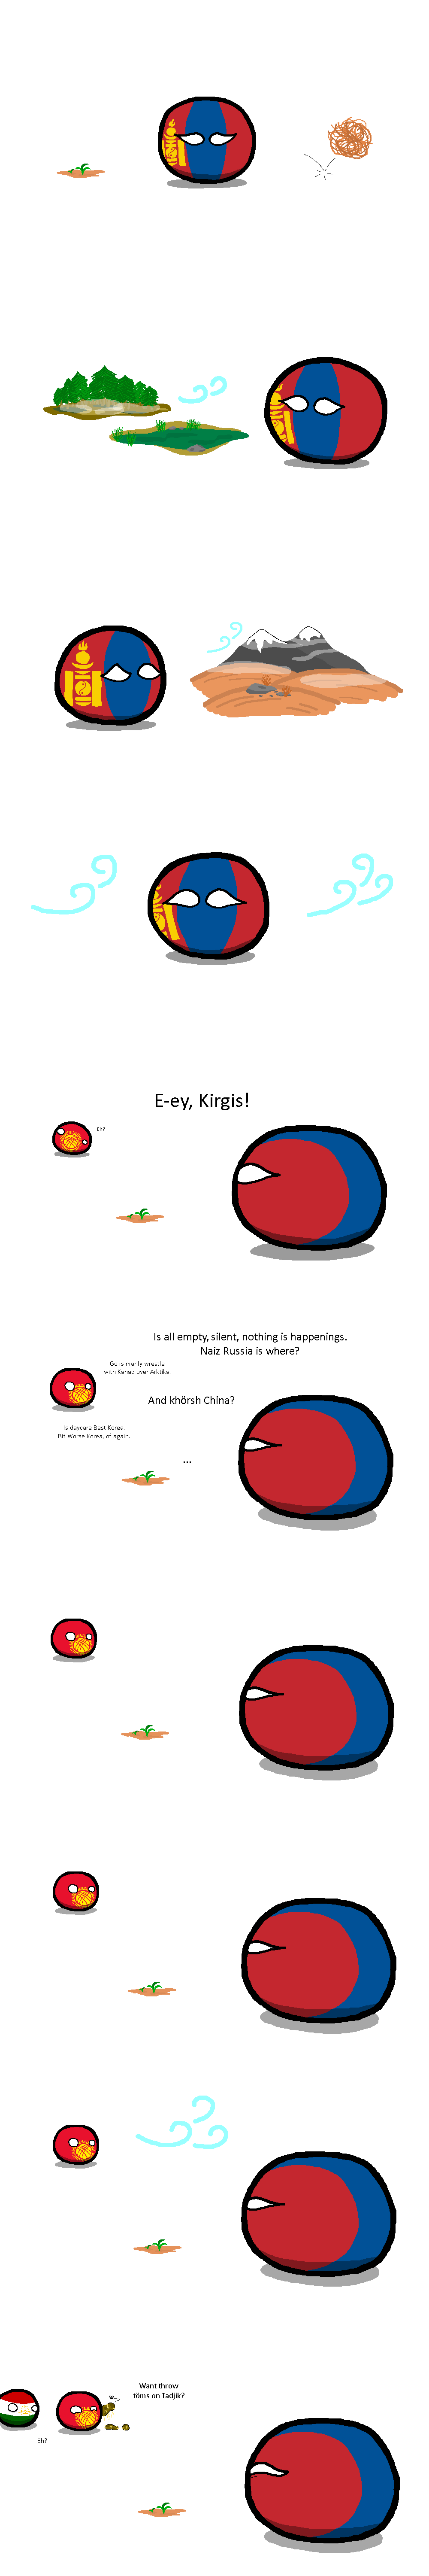 Nothing Happeningredditormade Mongolia Kirghiz Tadzhikistan By Prothey Polandball Countryball Mongolia History Memes Fun Comics